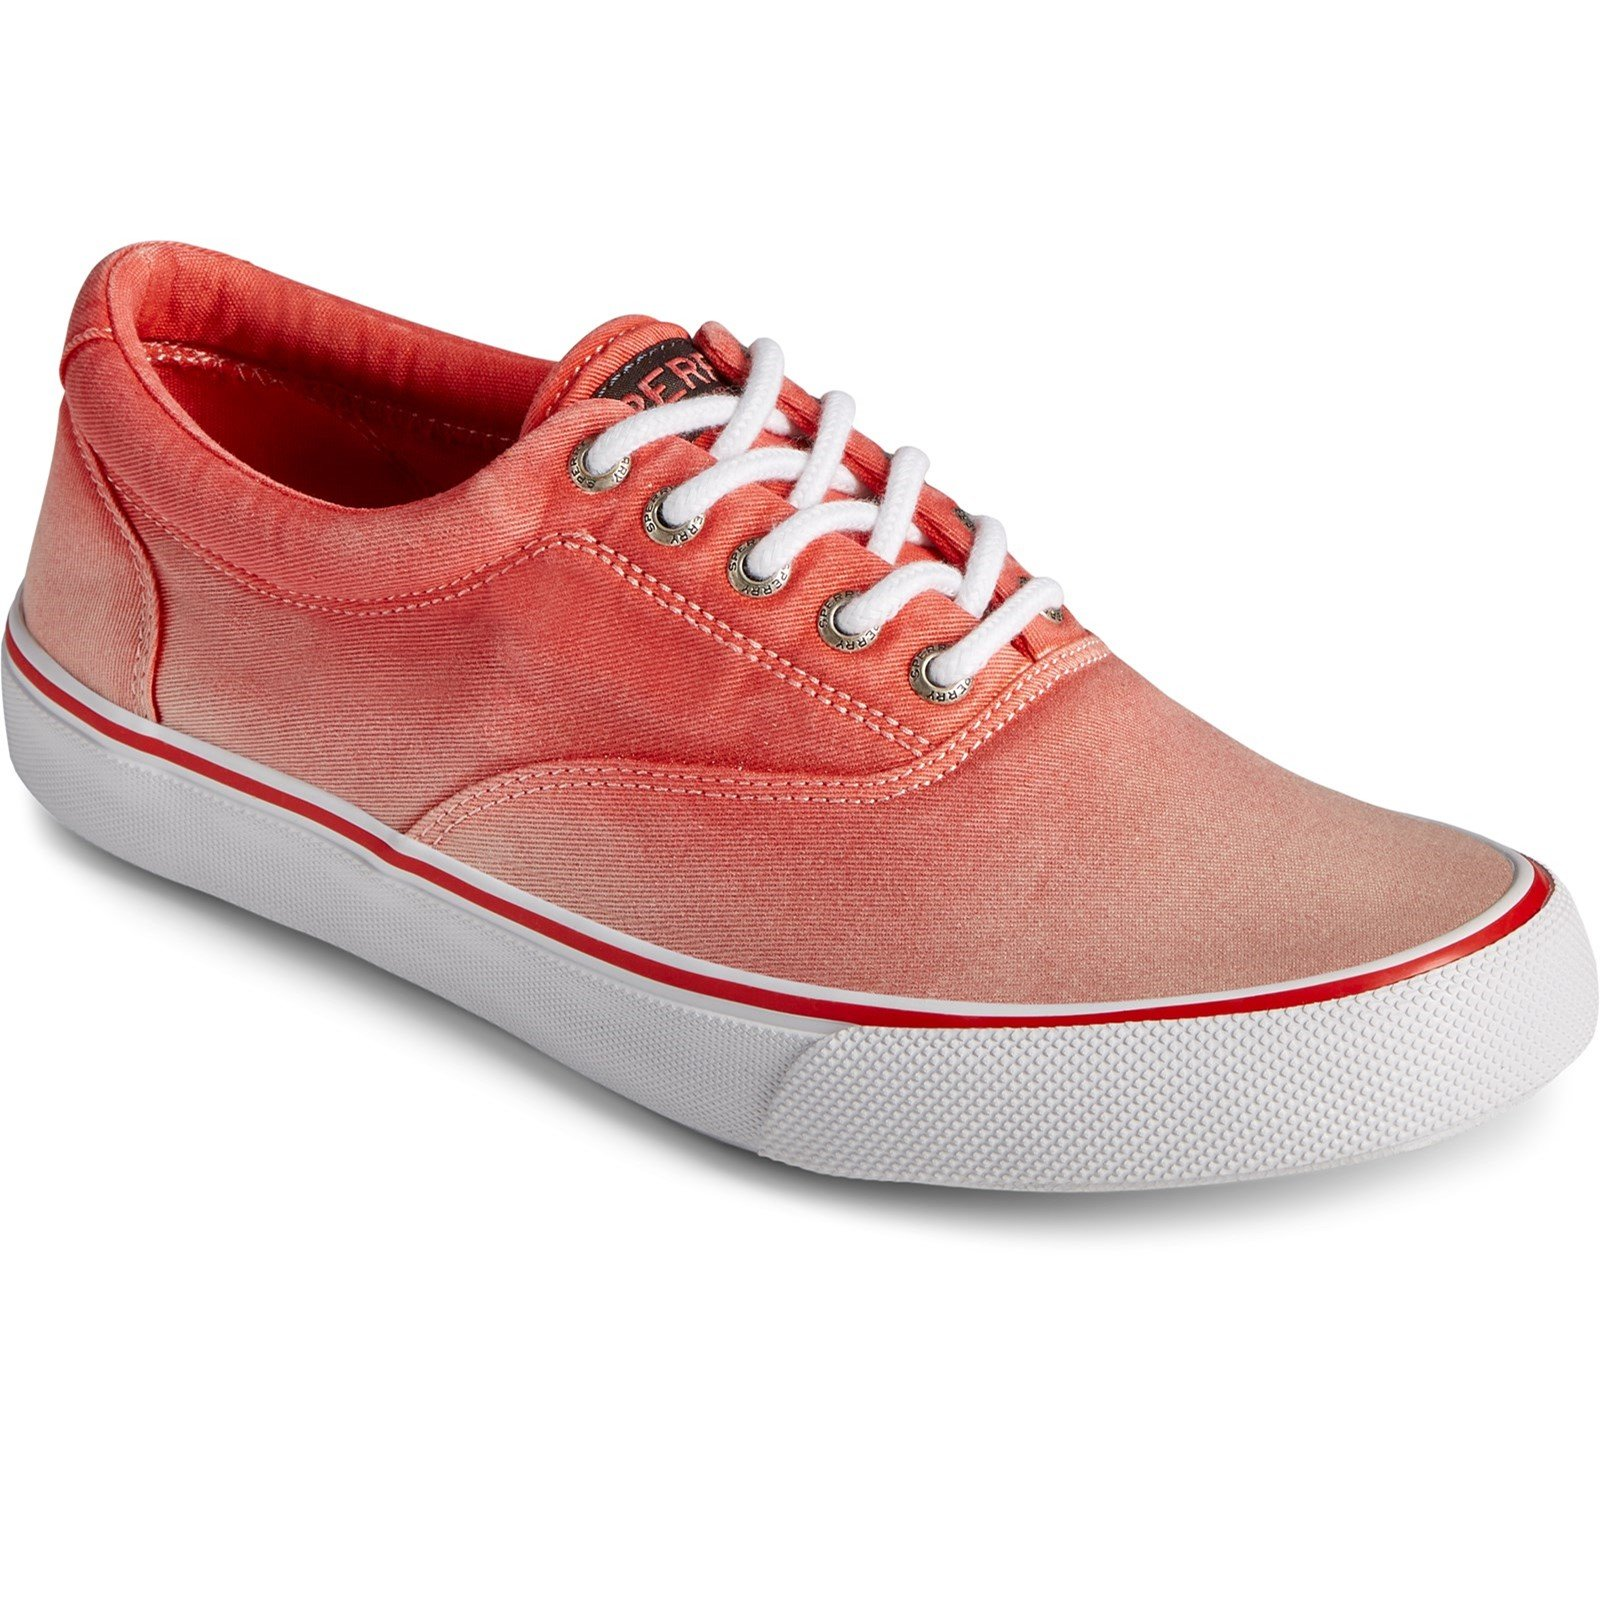 Sperry Men's Striper II CVO Ombre Lace Trainer Various Colours 32932 - Red 10